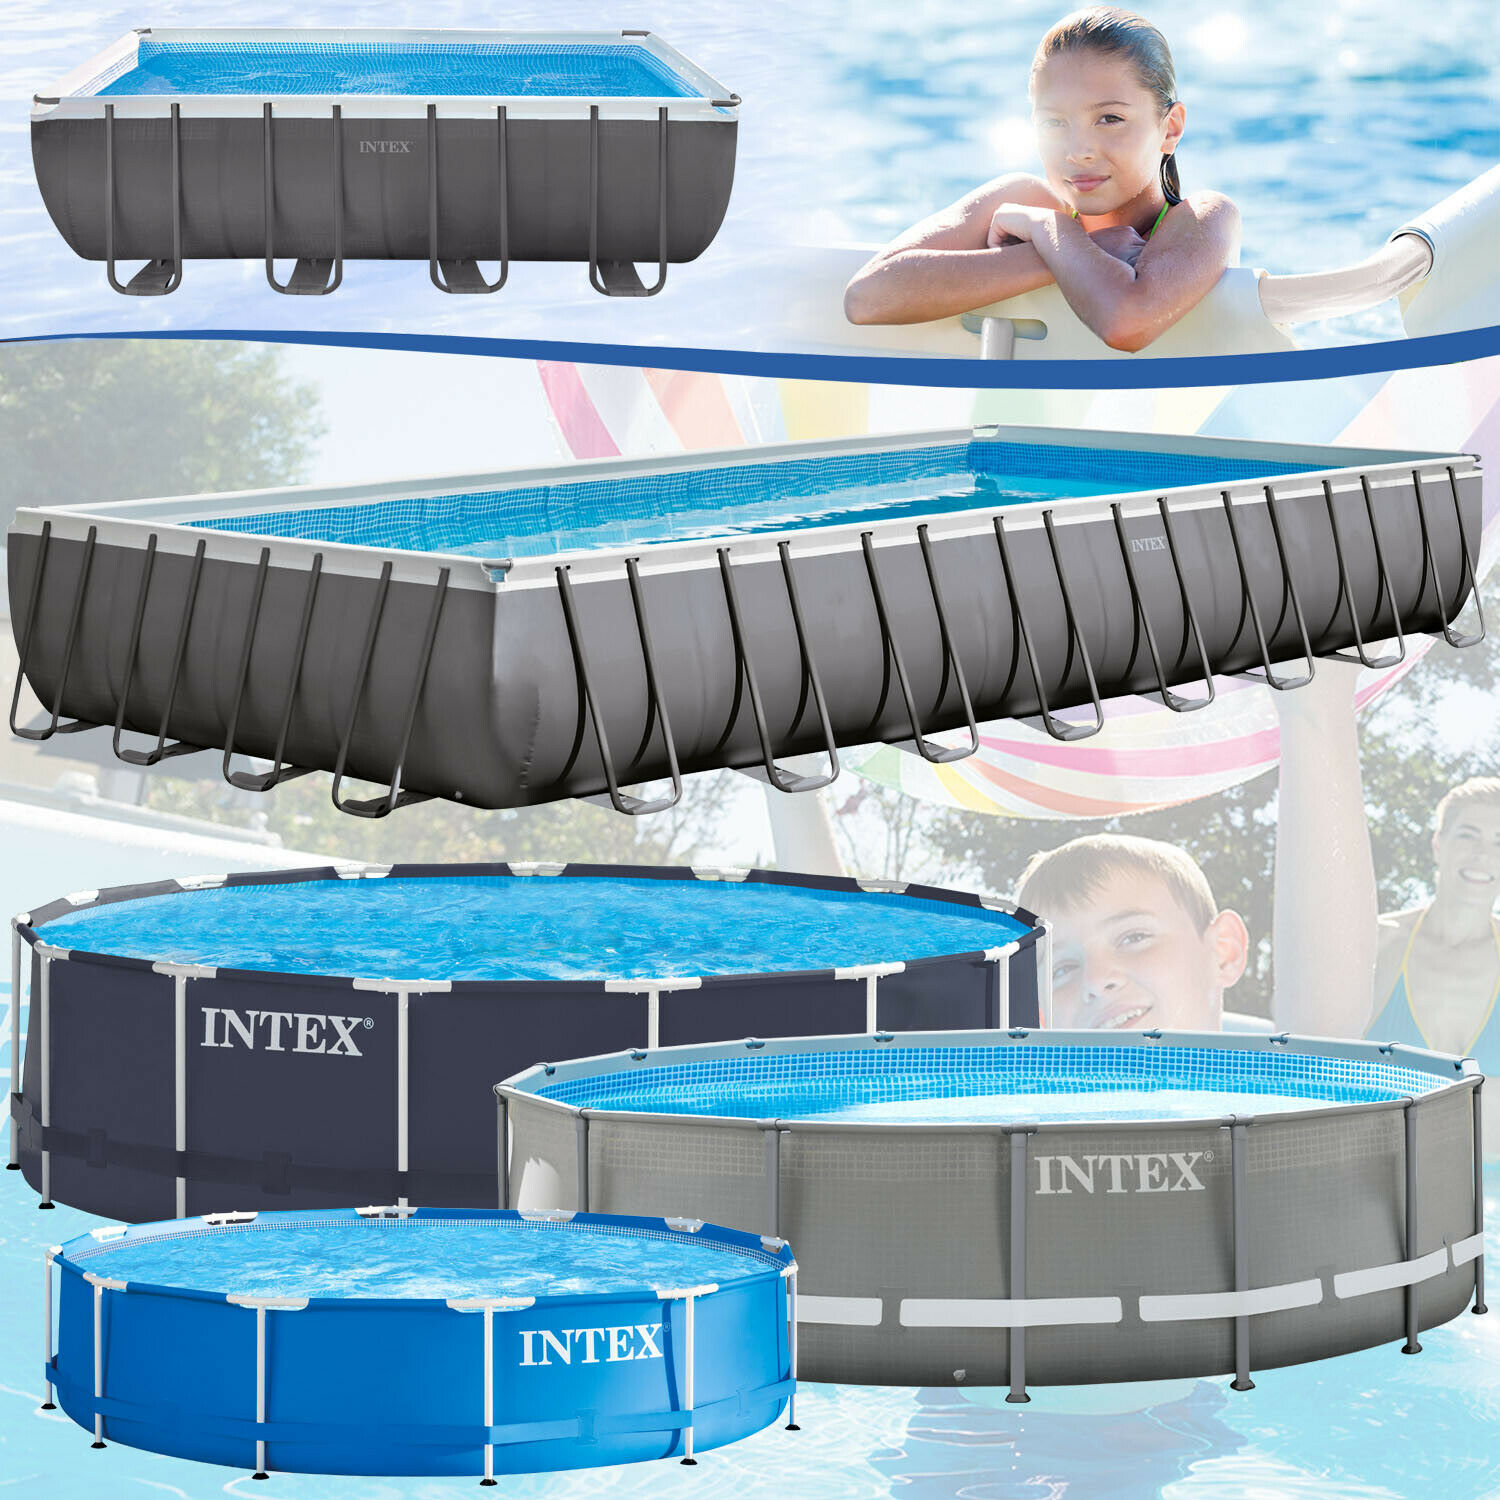 intex frame stahlrohrbecken swimming pool schwimmbad schwimmbecken planschbecken eur 62 90. Black Bedroom Furniture Sets. Home Design Ideas